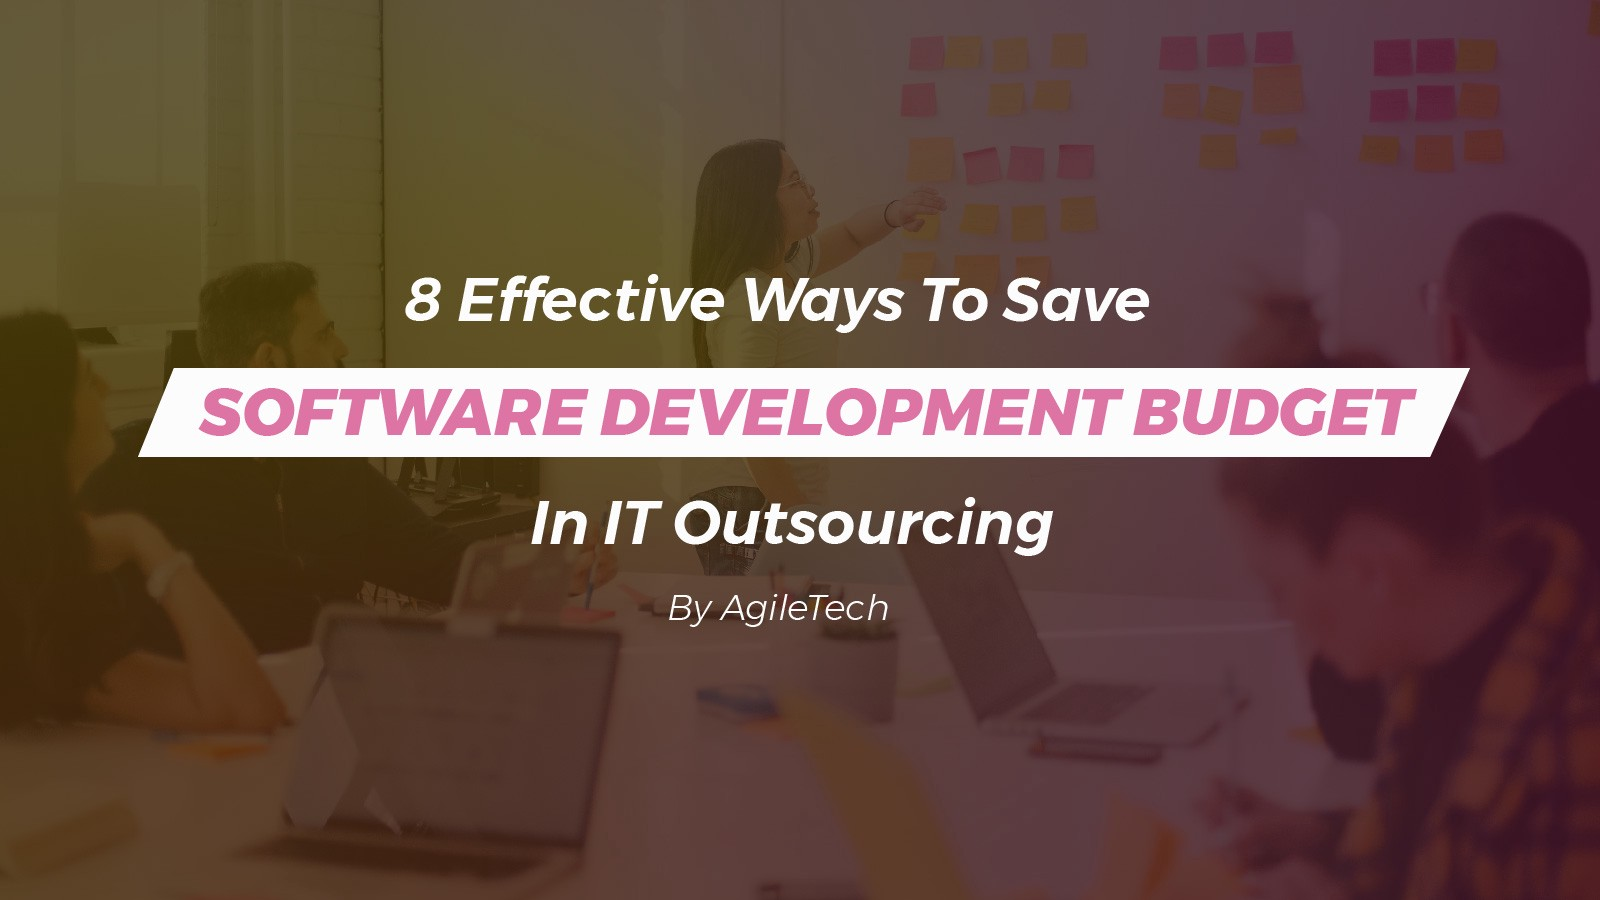 save software development budget in IT outsourcing by agiletech